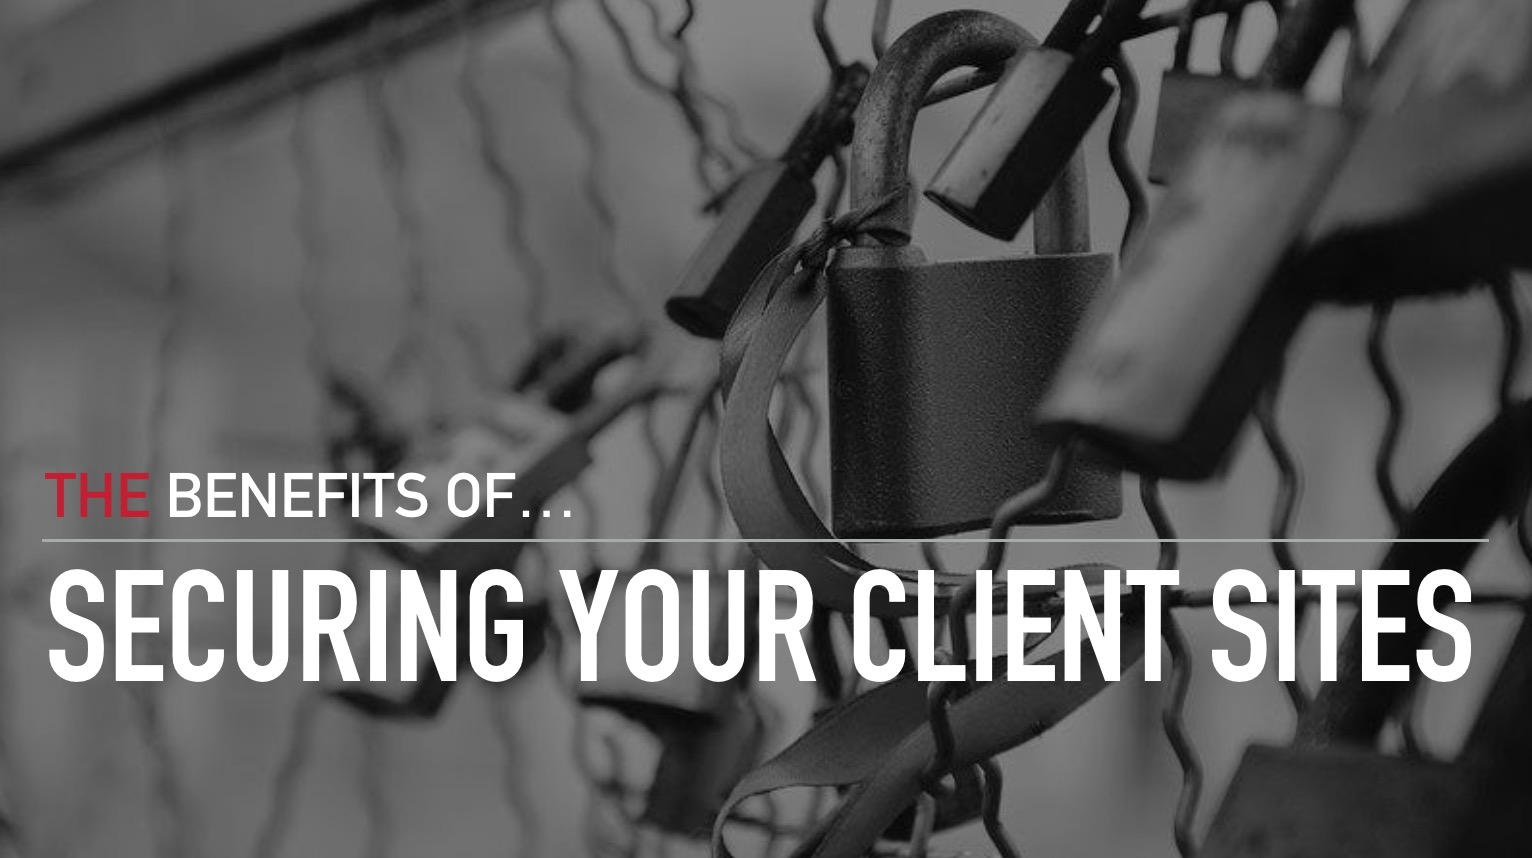 Benefits of Securing Your Client Websites